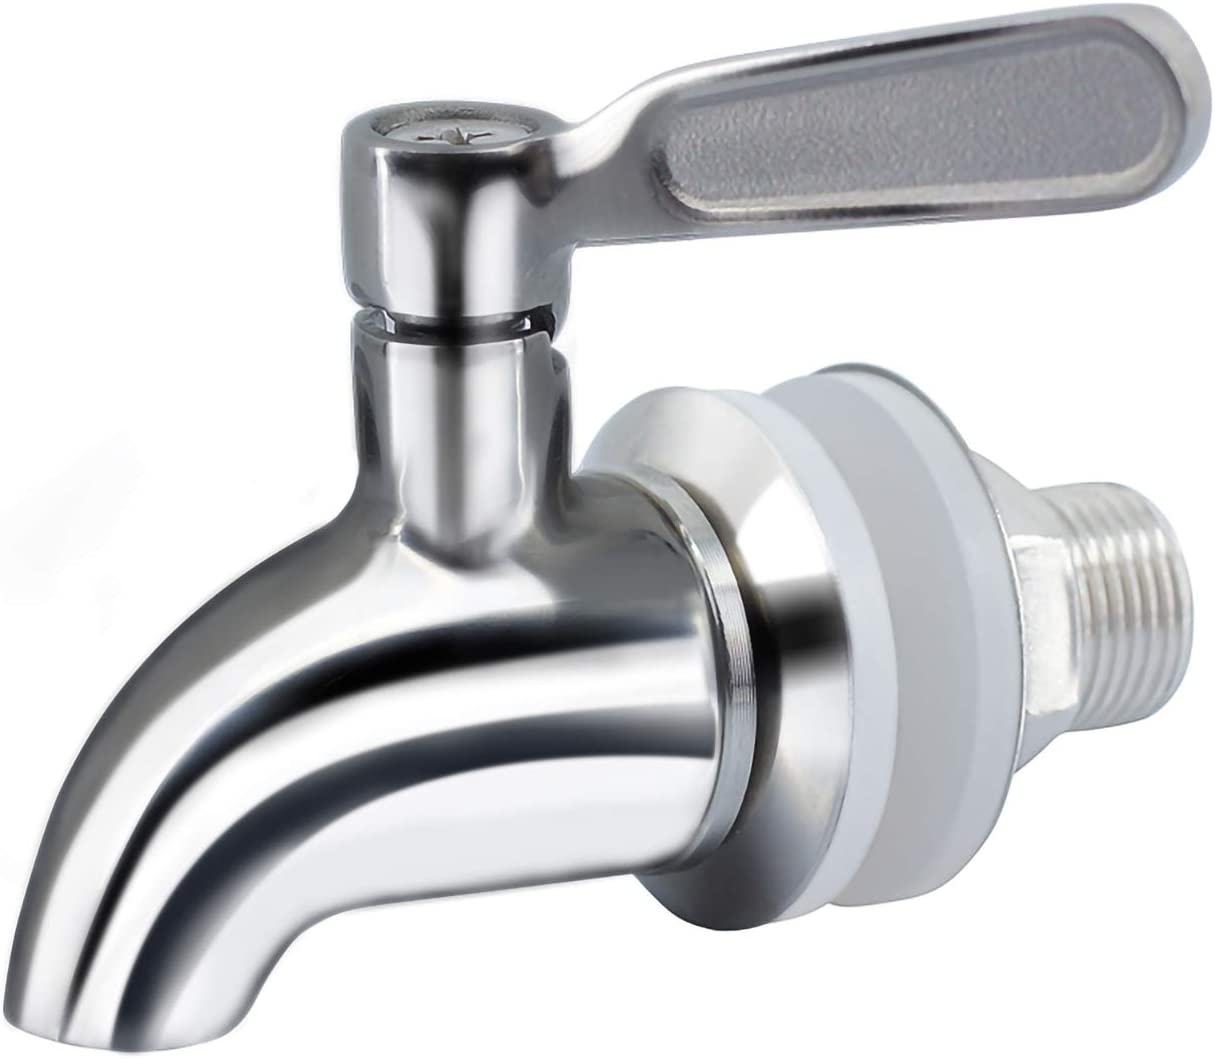 hgzaccompany Stainless Steel Spigot For Drink Dispenser, Replacement Metal Spigot For Beverage Dispenser, Water Dispenser Faucet, Food Grade Metal Spout. (1)